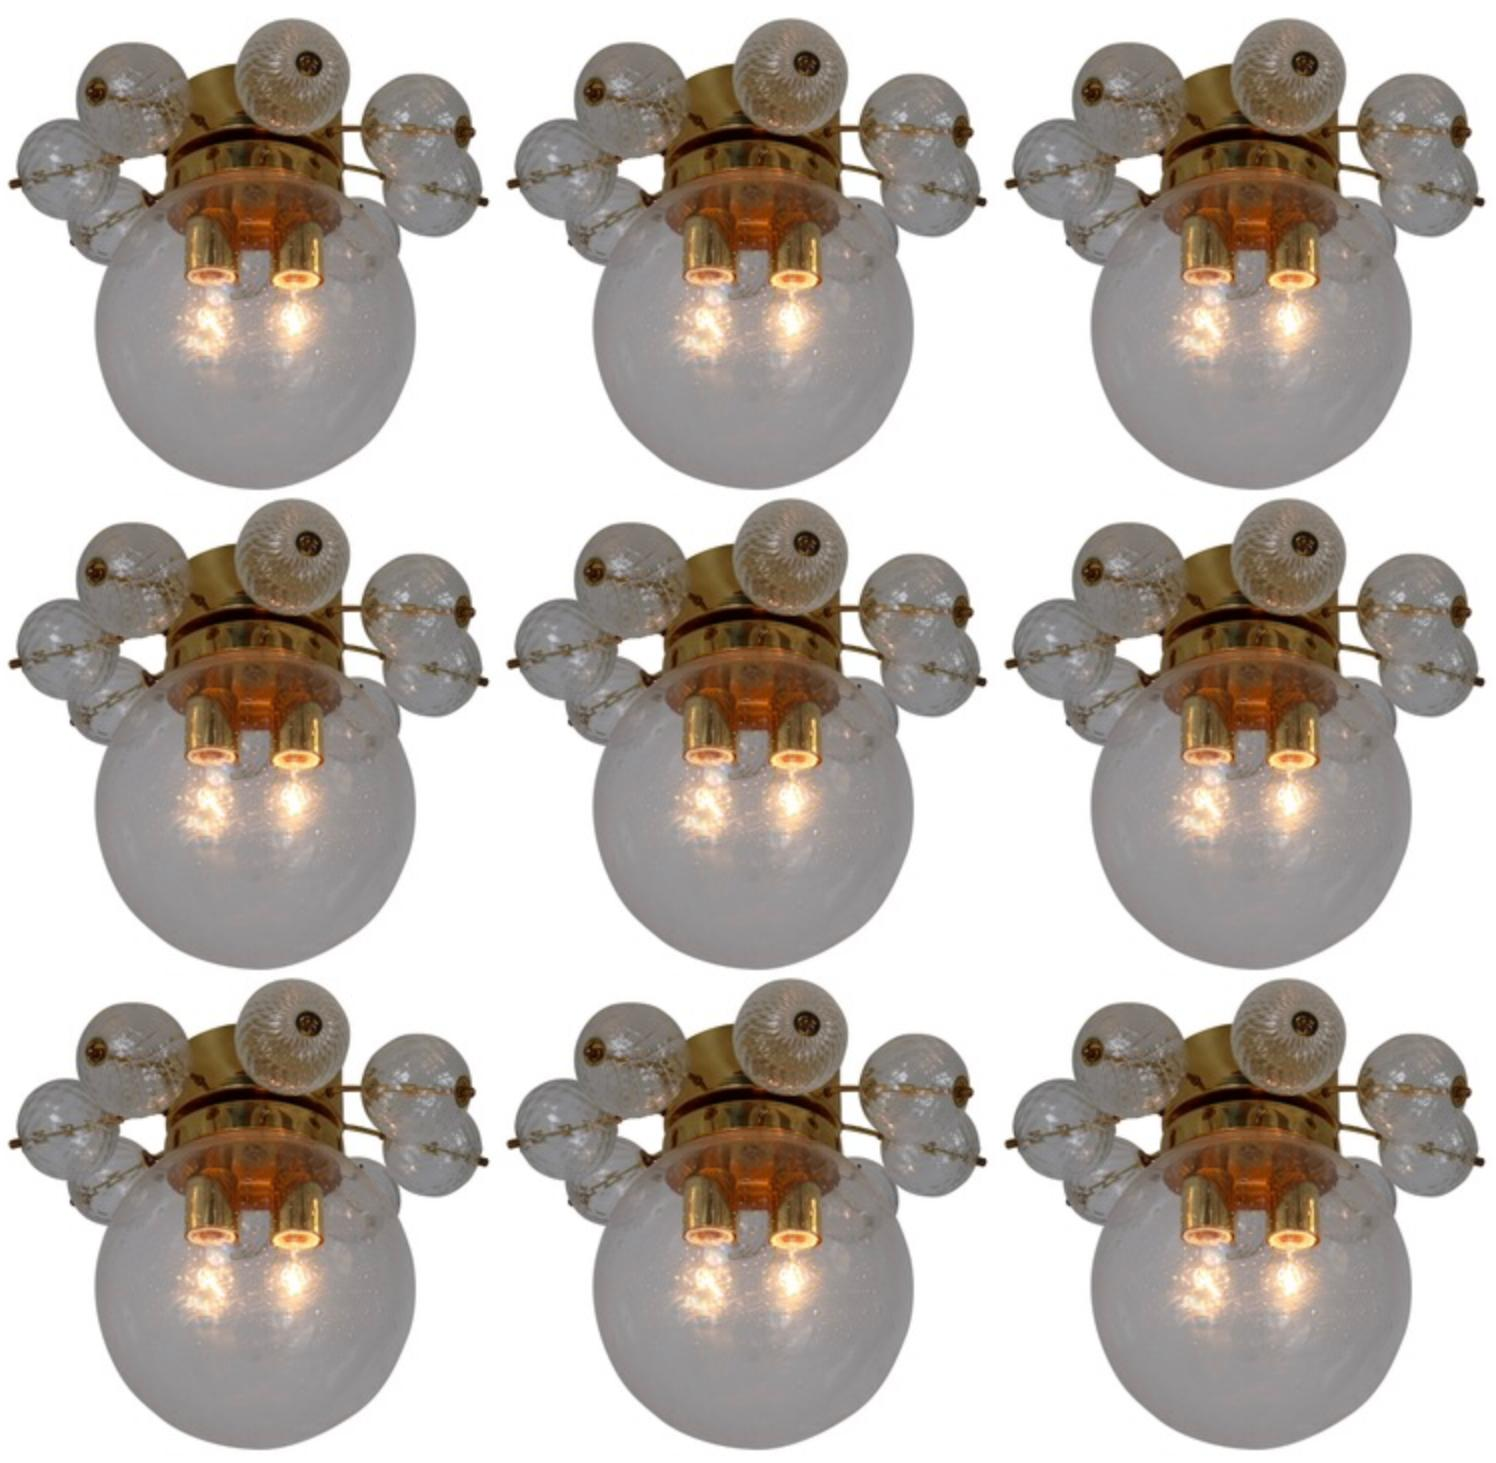 Large Set Midcentury Brass Ceiling Lamp Chandeliers With Hand Blown Glass 1960s